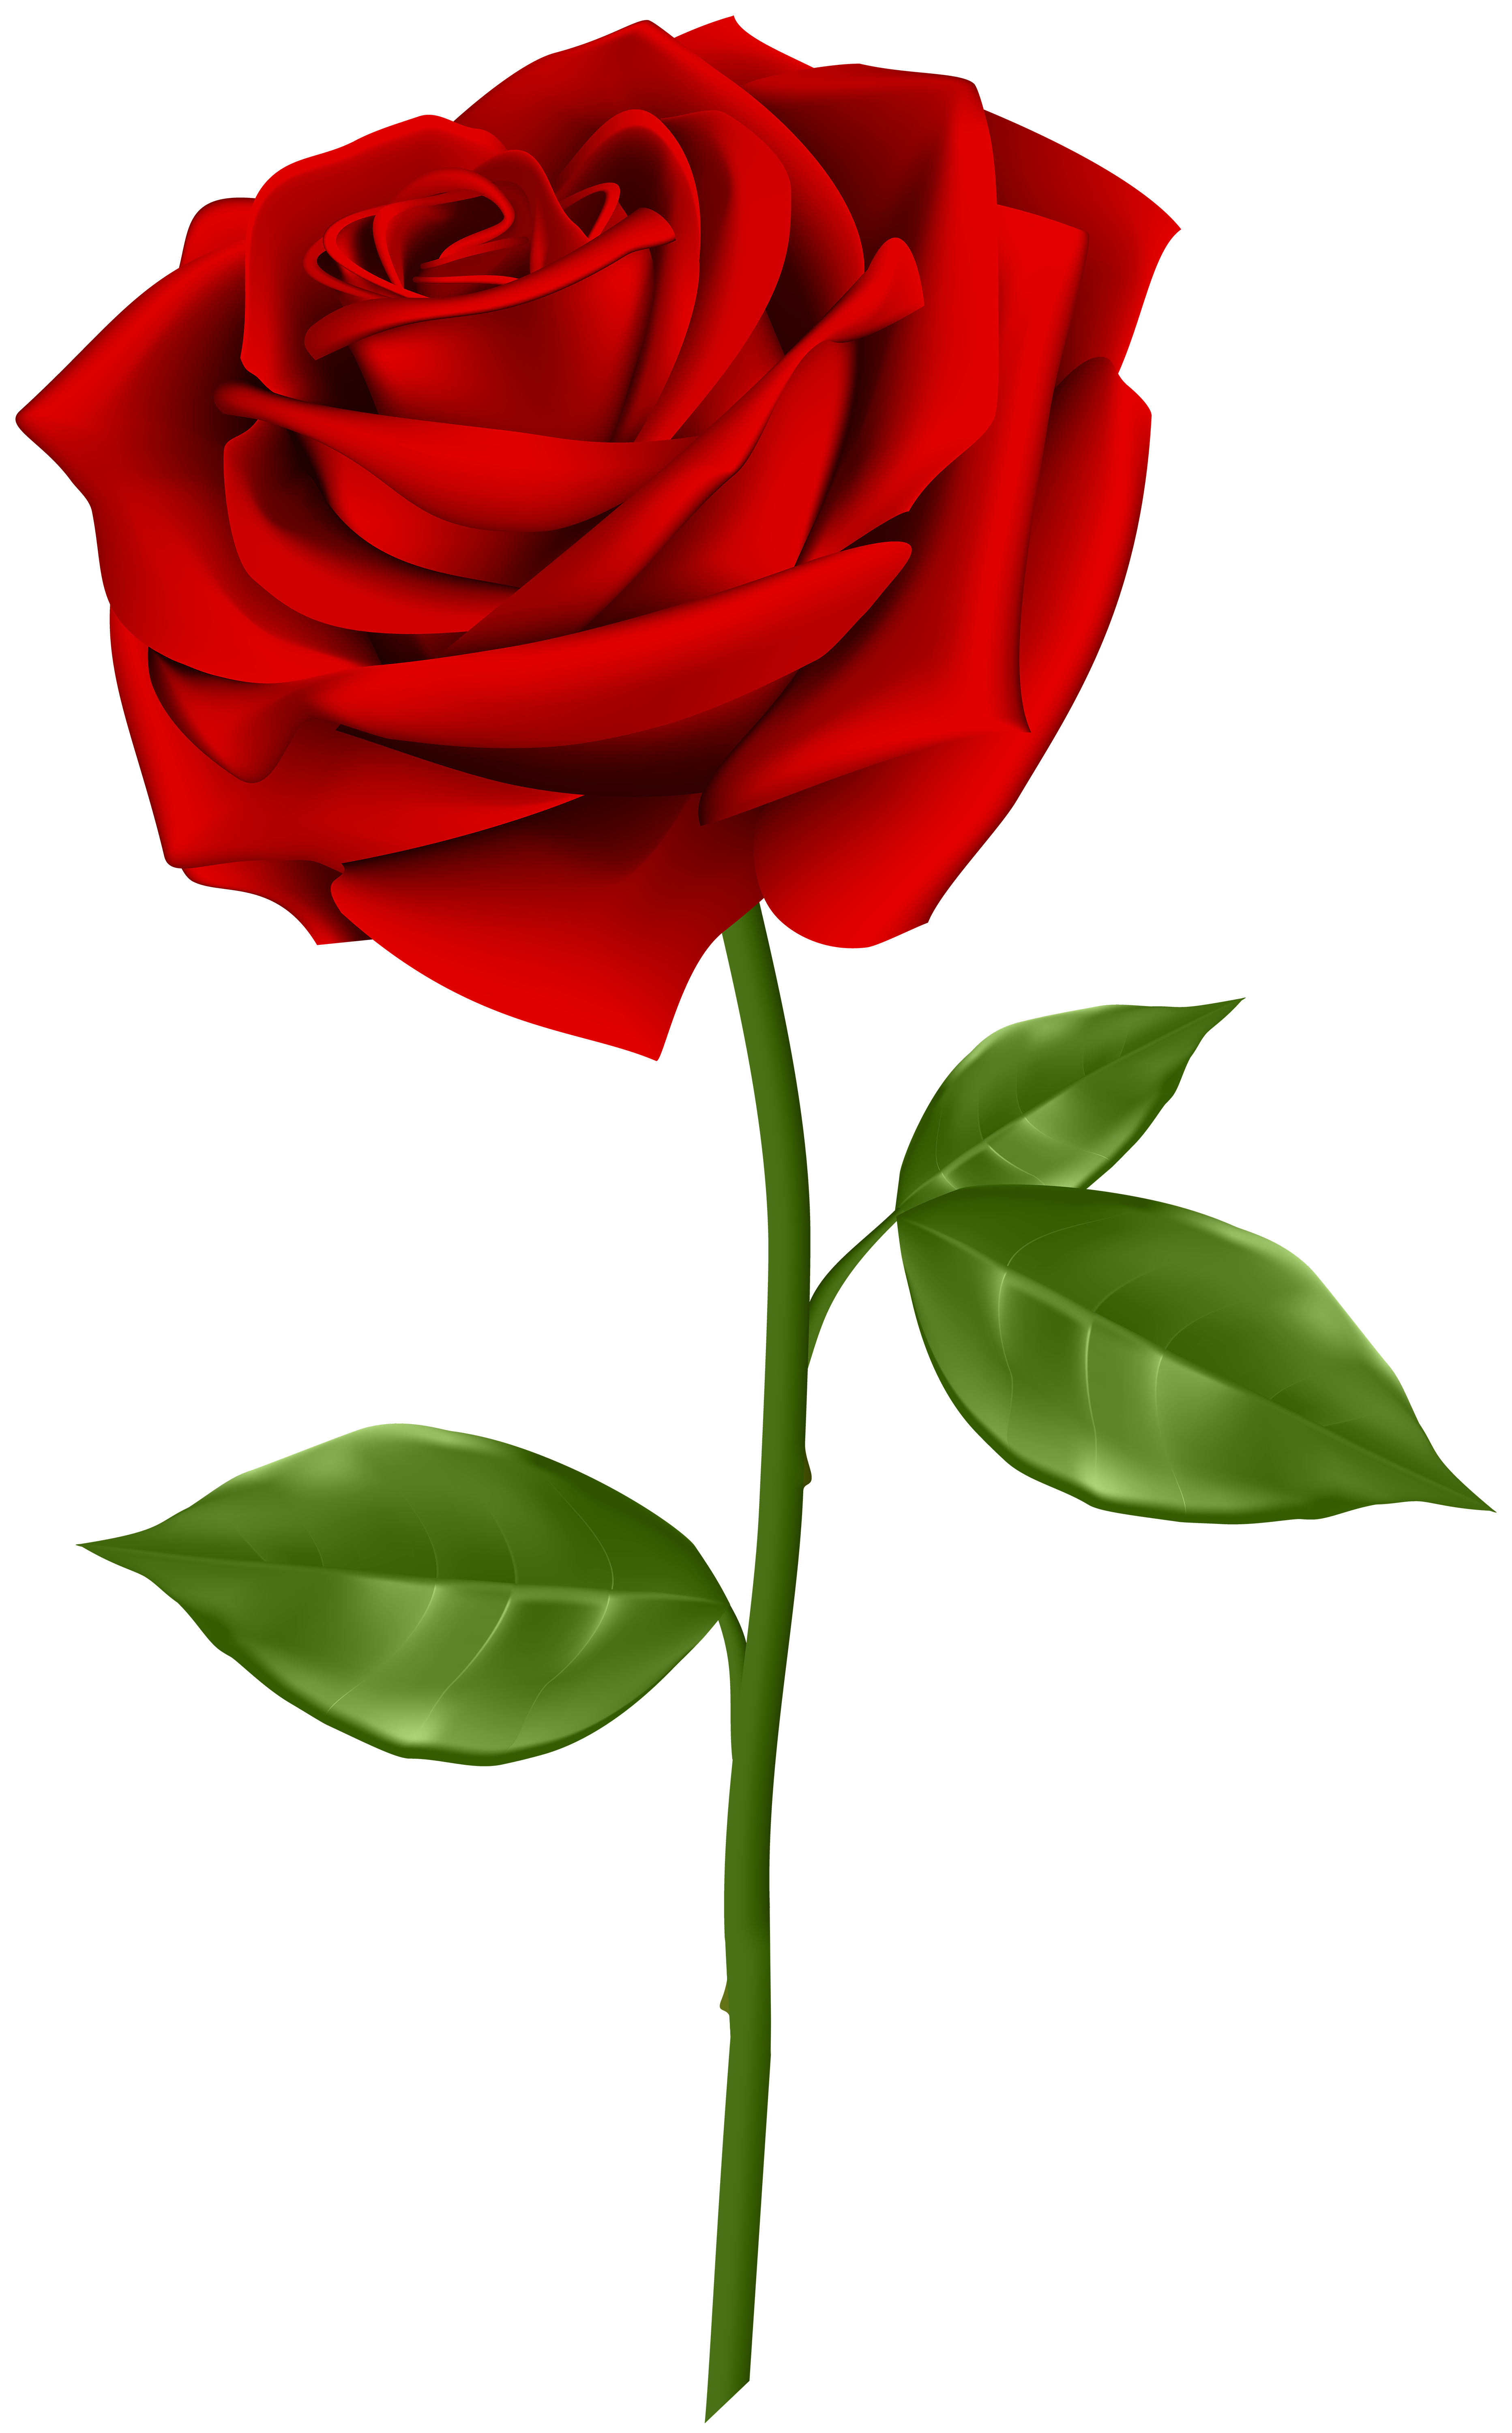 Rose png images. Red transparent clip art